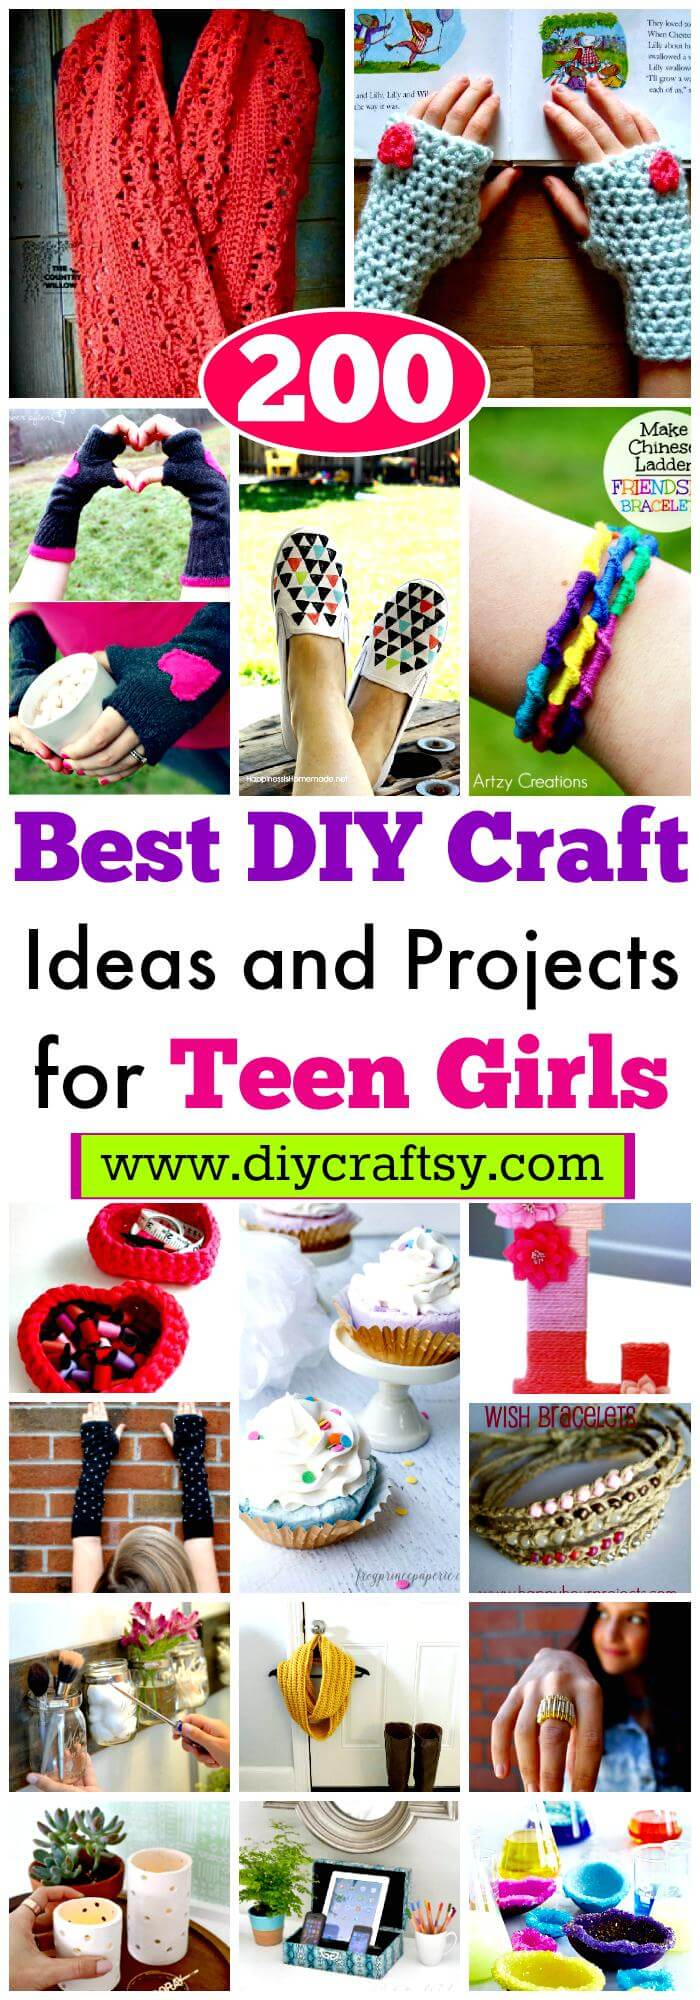 DIY Craft Ideas and Projects for Teen Girls